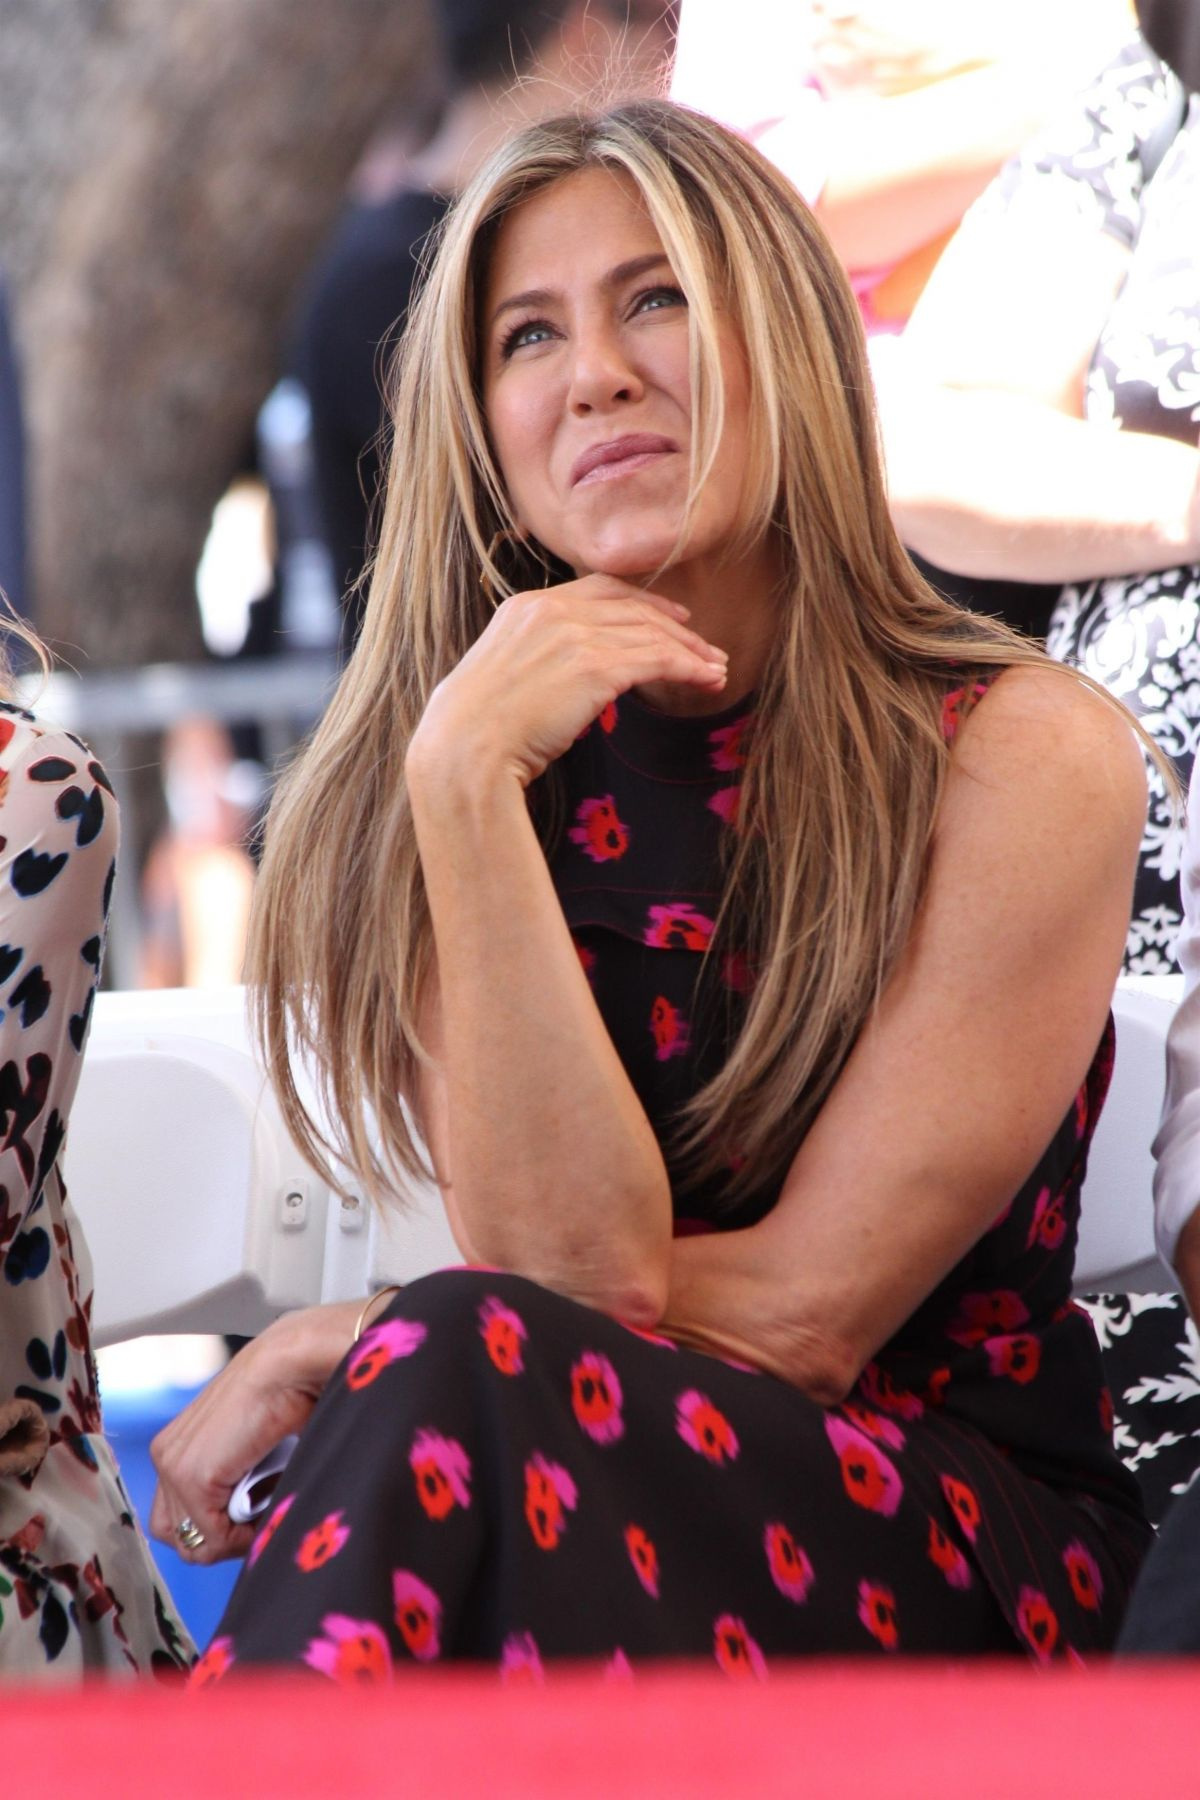 Jennifer Aniston At Jason Bateman's Hollywood Star Ceremony in Hollywood   jennifer-aniston-at-jason-bateman-s-hollywood-star-ceremony-in-hollywood_4